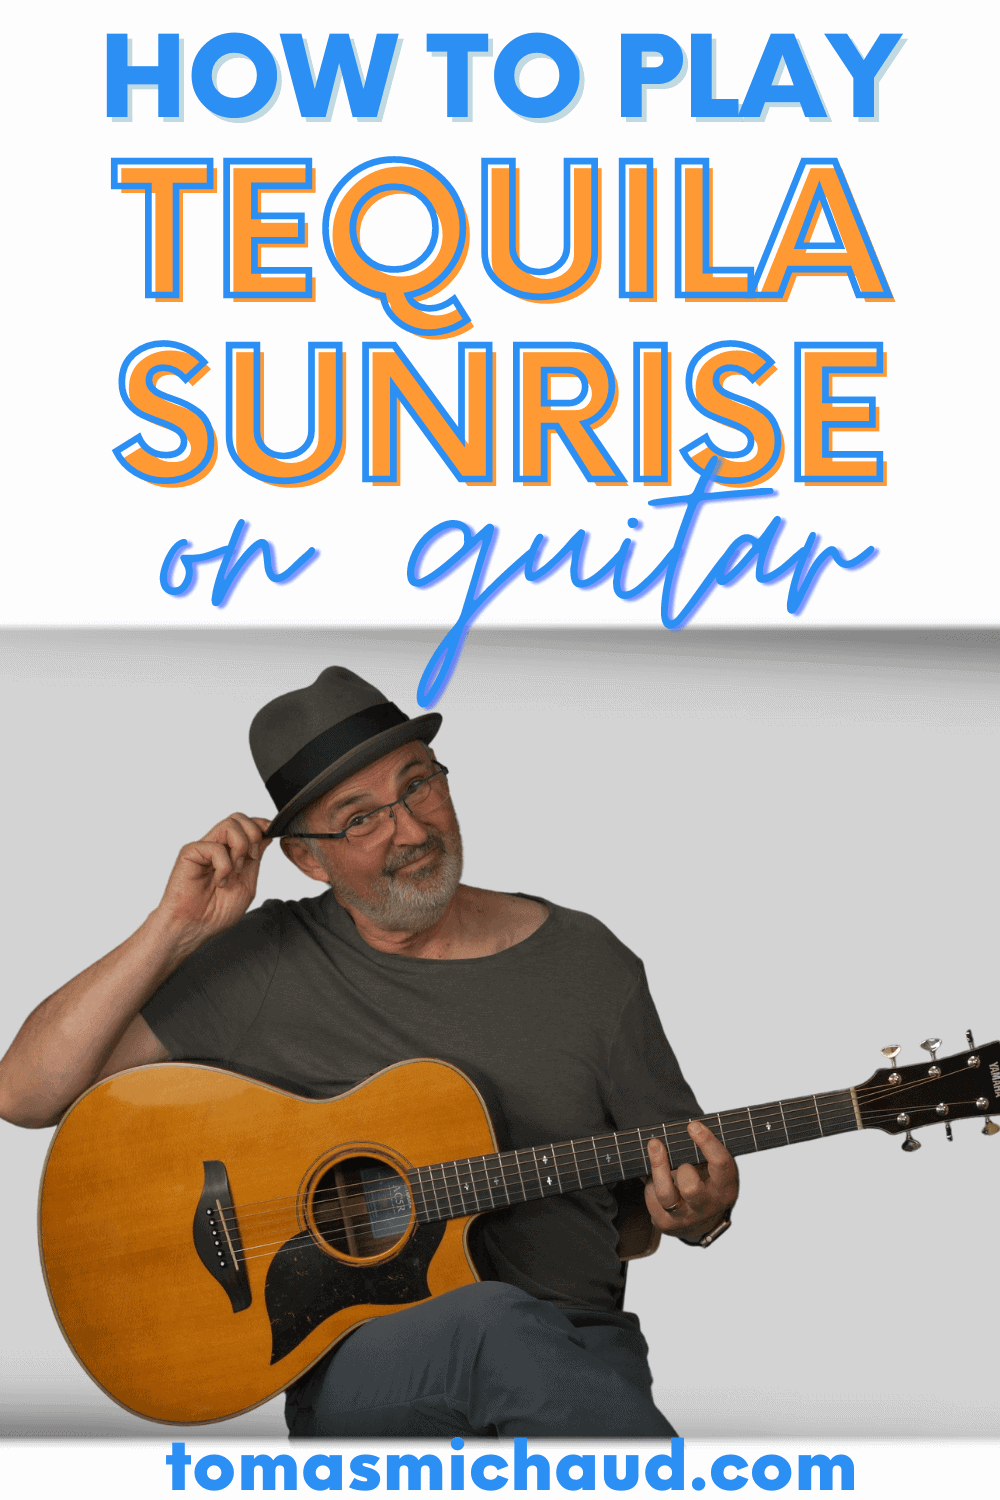 How to play Tequila Sunrise on guitar